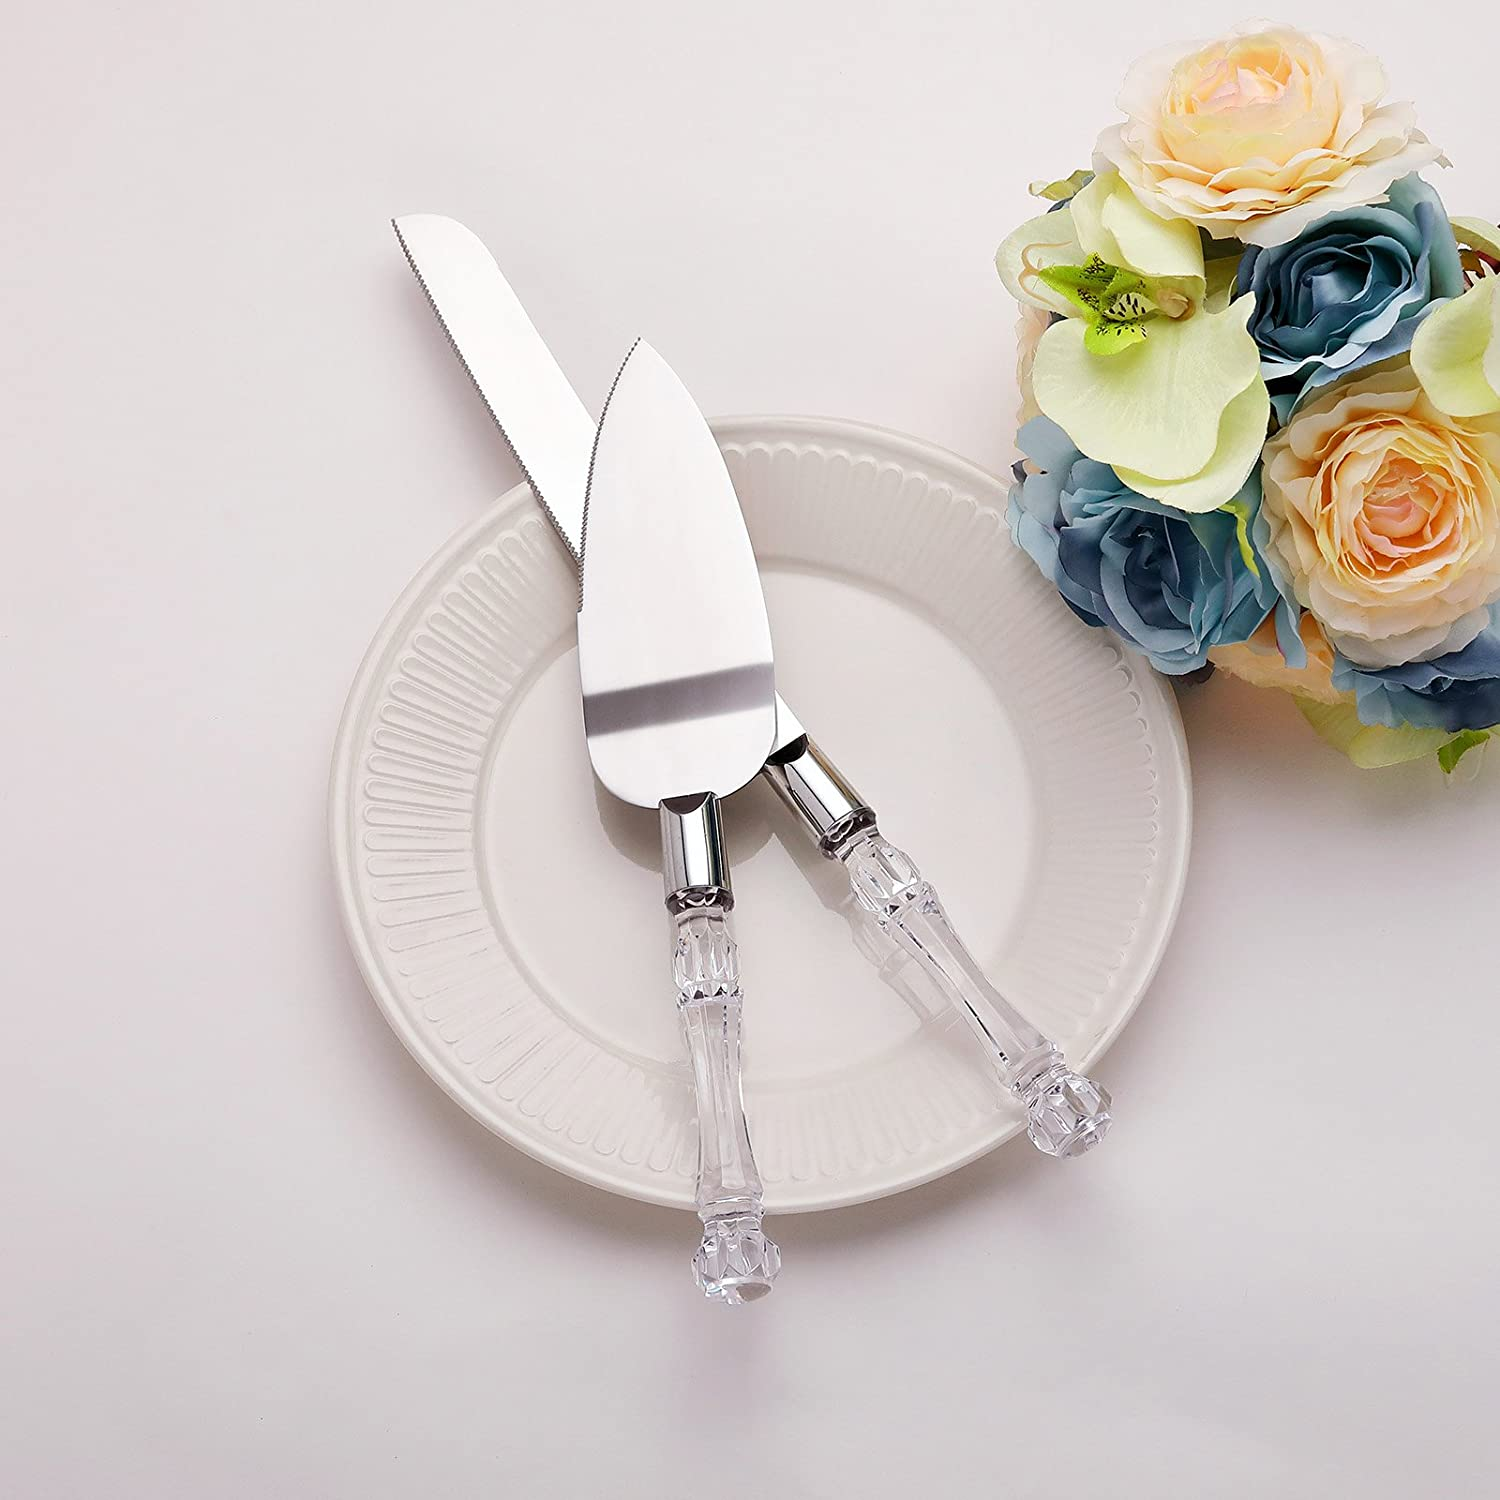 AW BRIDAL Wedding Cake Directly managed store Knife and - 13.2 Server Trust Set In